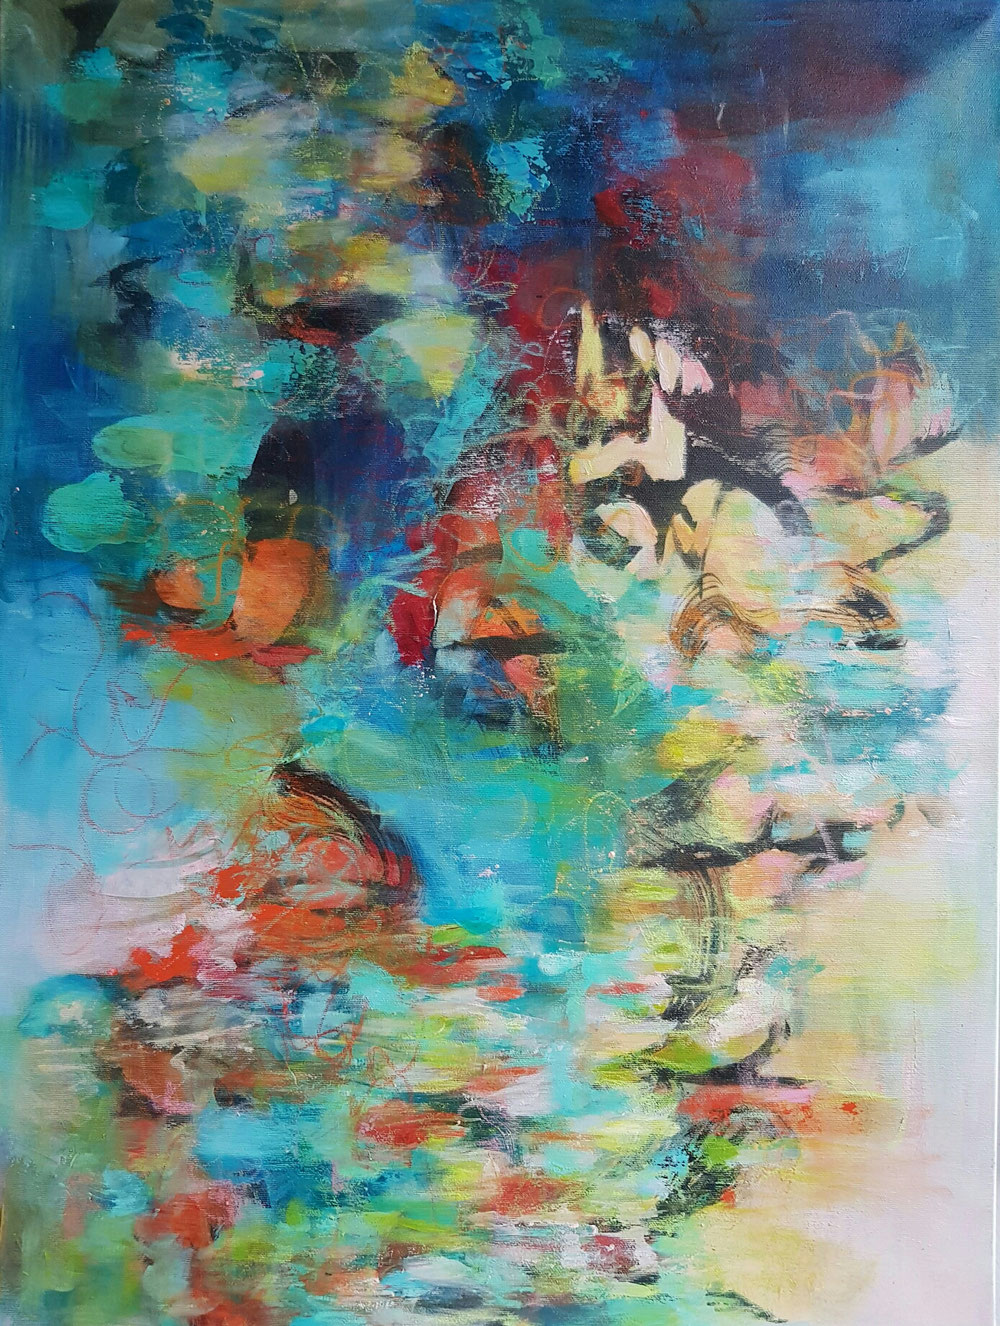 Secret waters, 80 x 60, mixed media on canvas / reserved / private collection